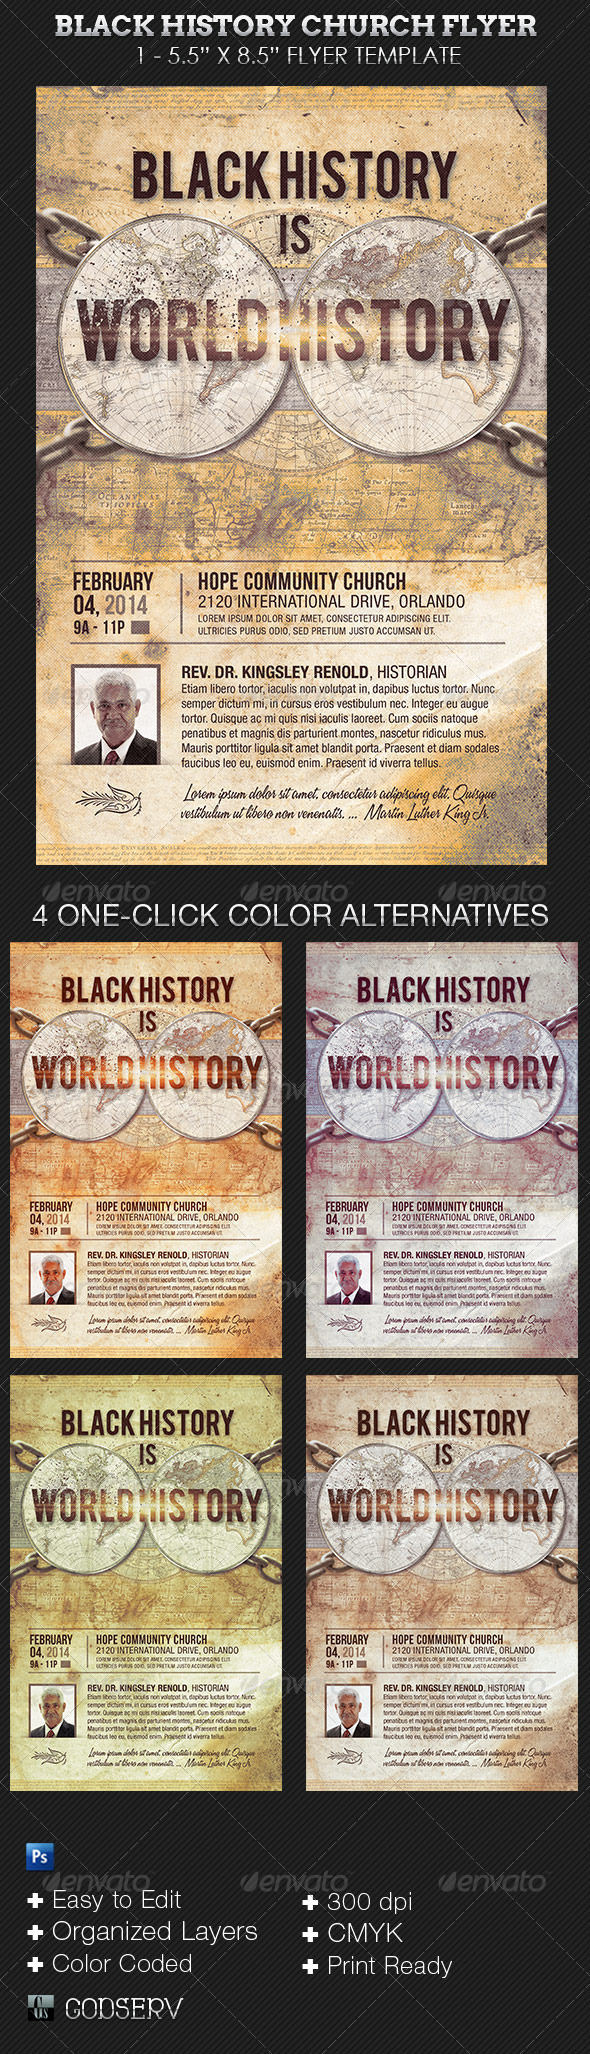 GraphicRiver Black History Church Flyer Template 6605145